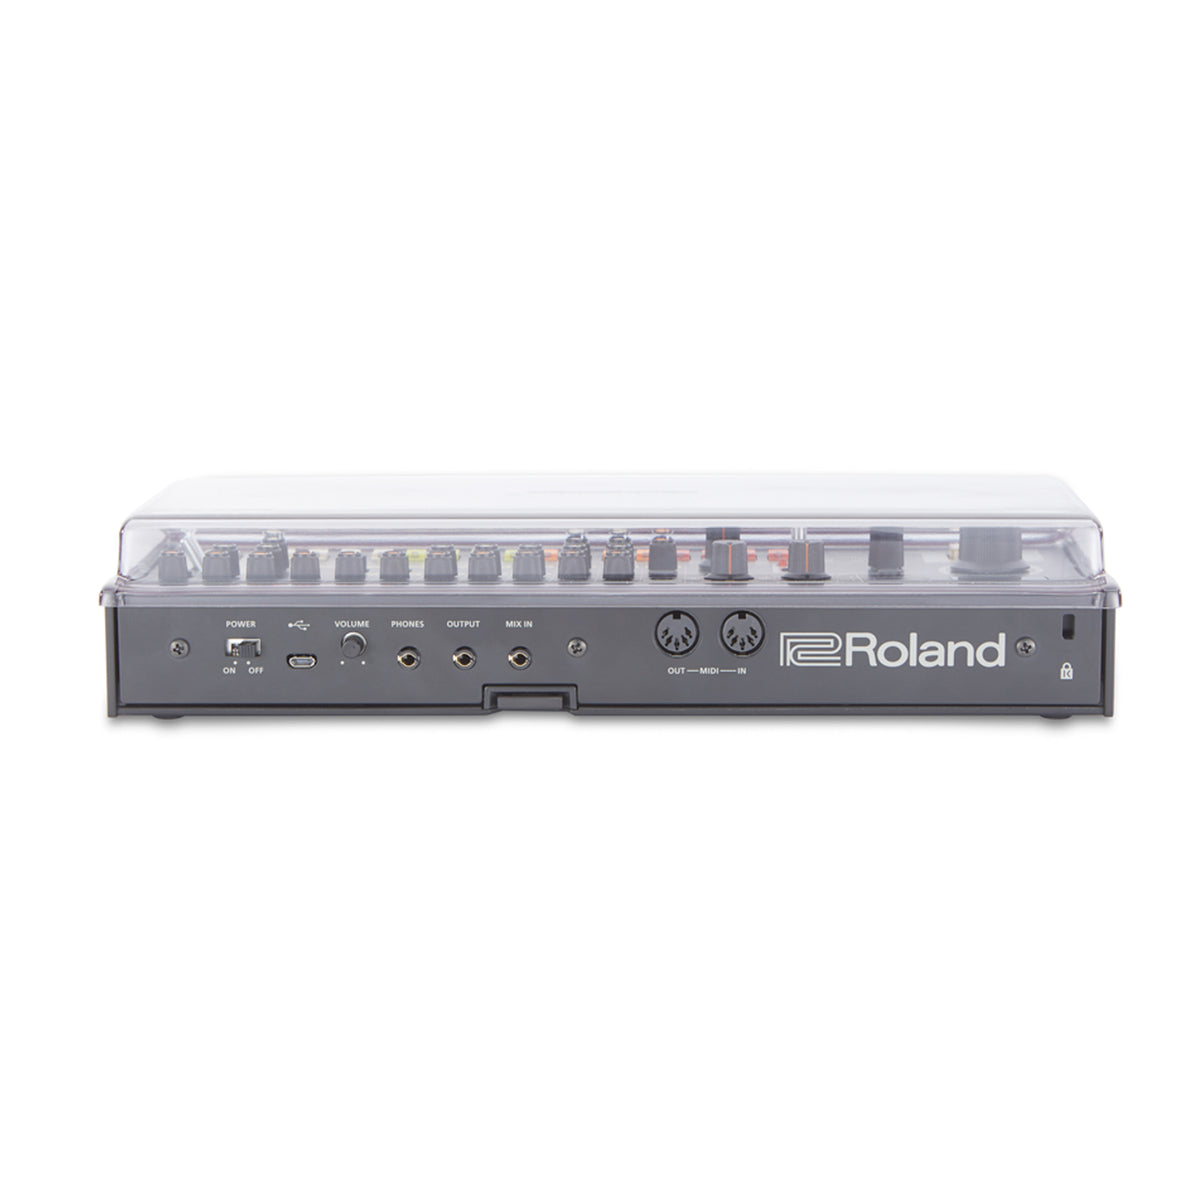 Decksaver: Polycarbonate Dustcover For Roland Boutique Cover (DS-PC-BOUTIQUE)